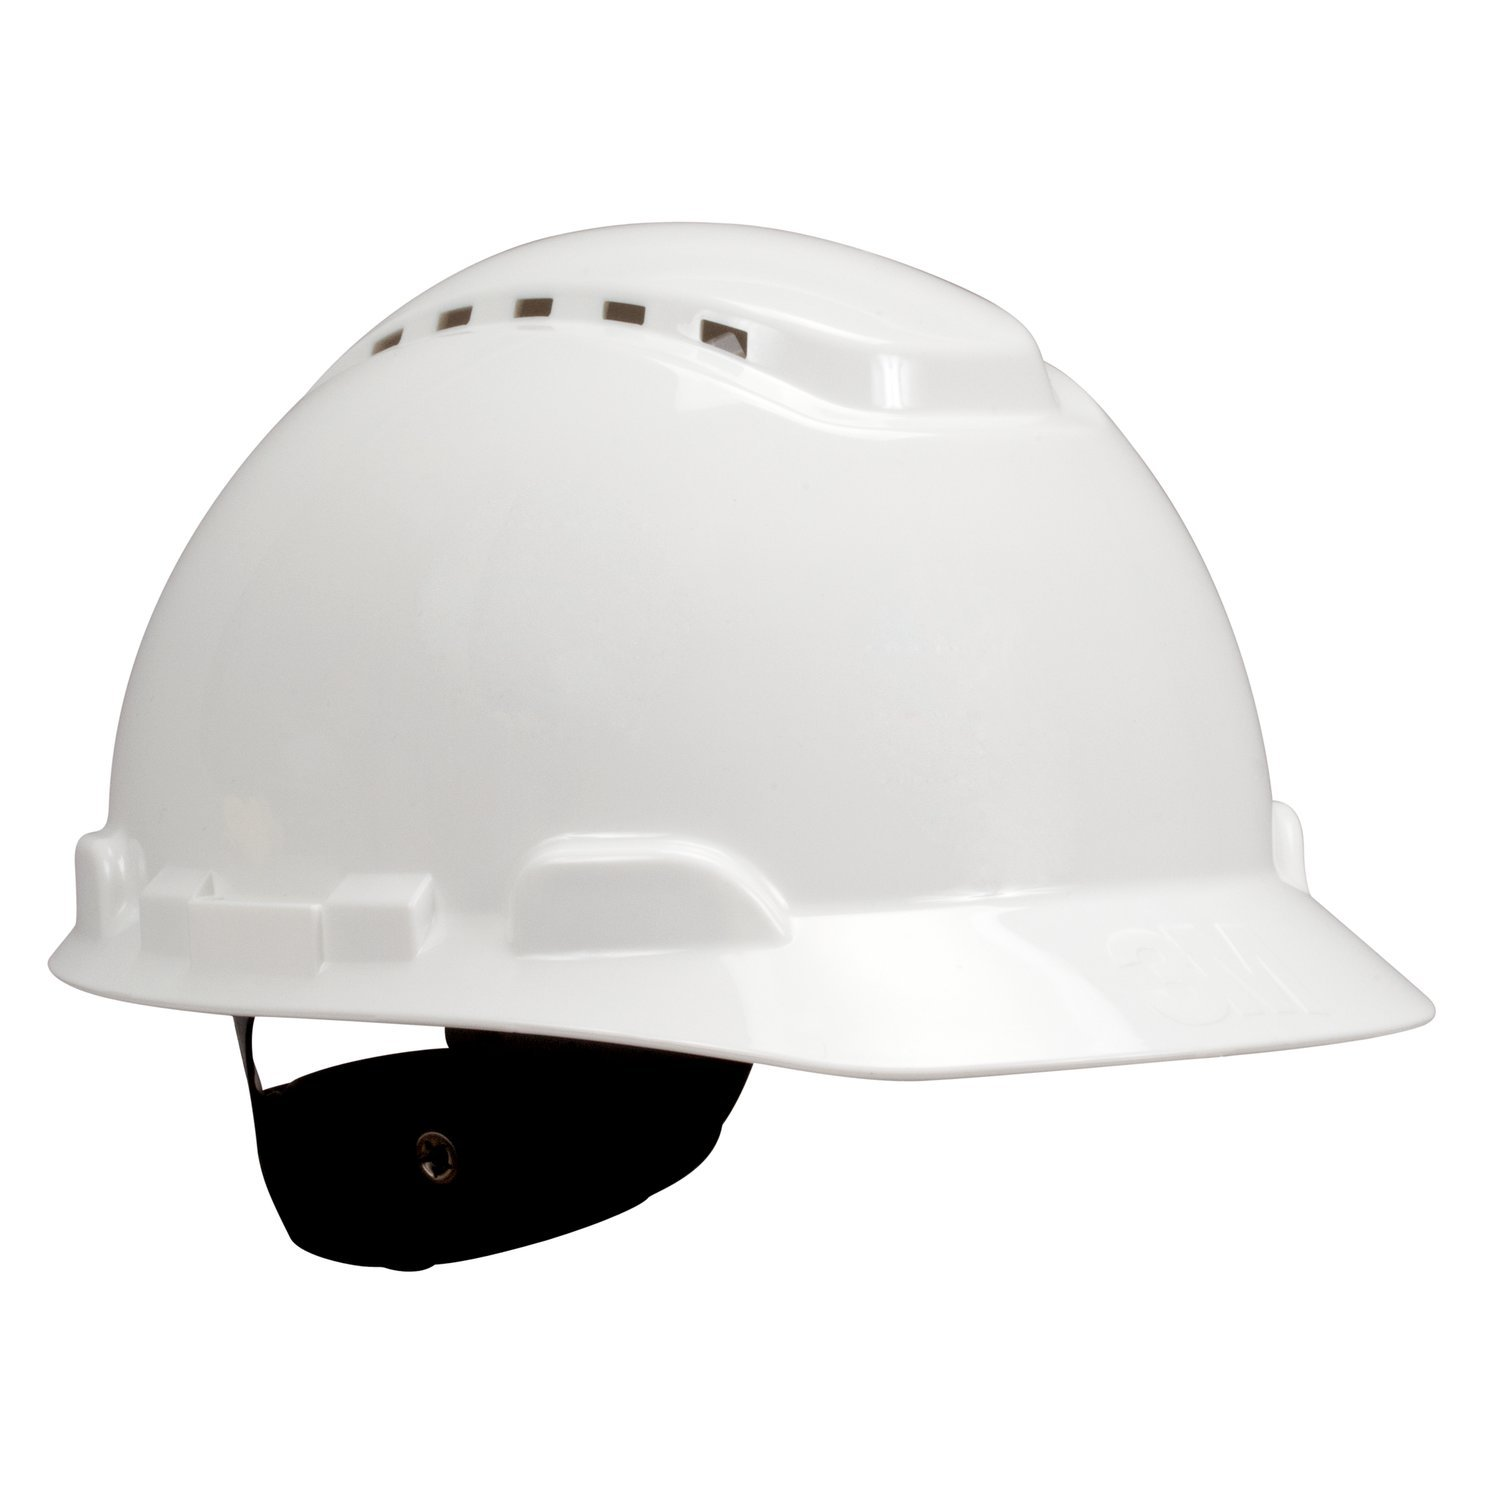 H-700 Series Vented Hard Hats with 4-Point Ratchet Suspension